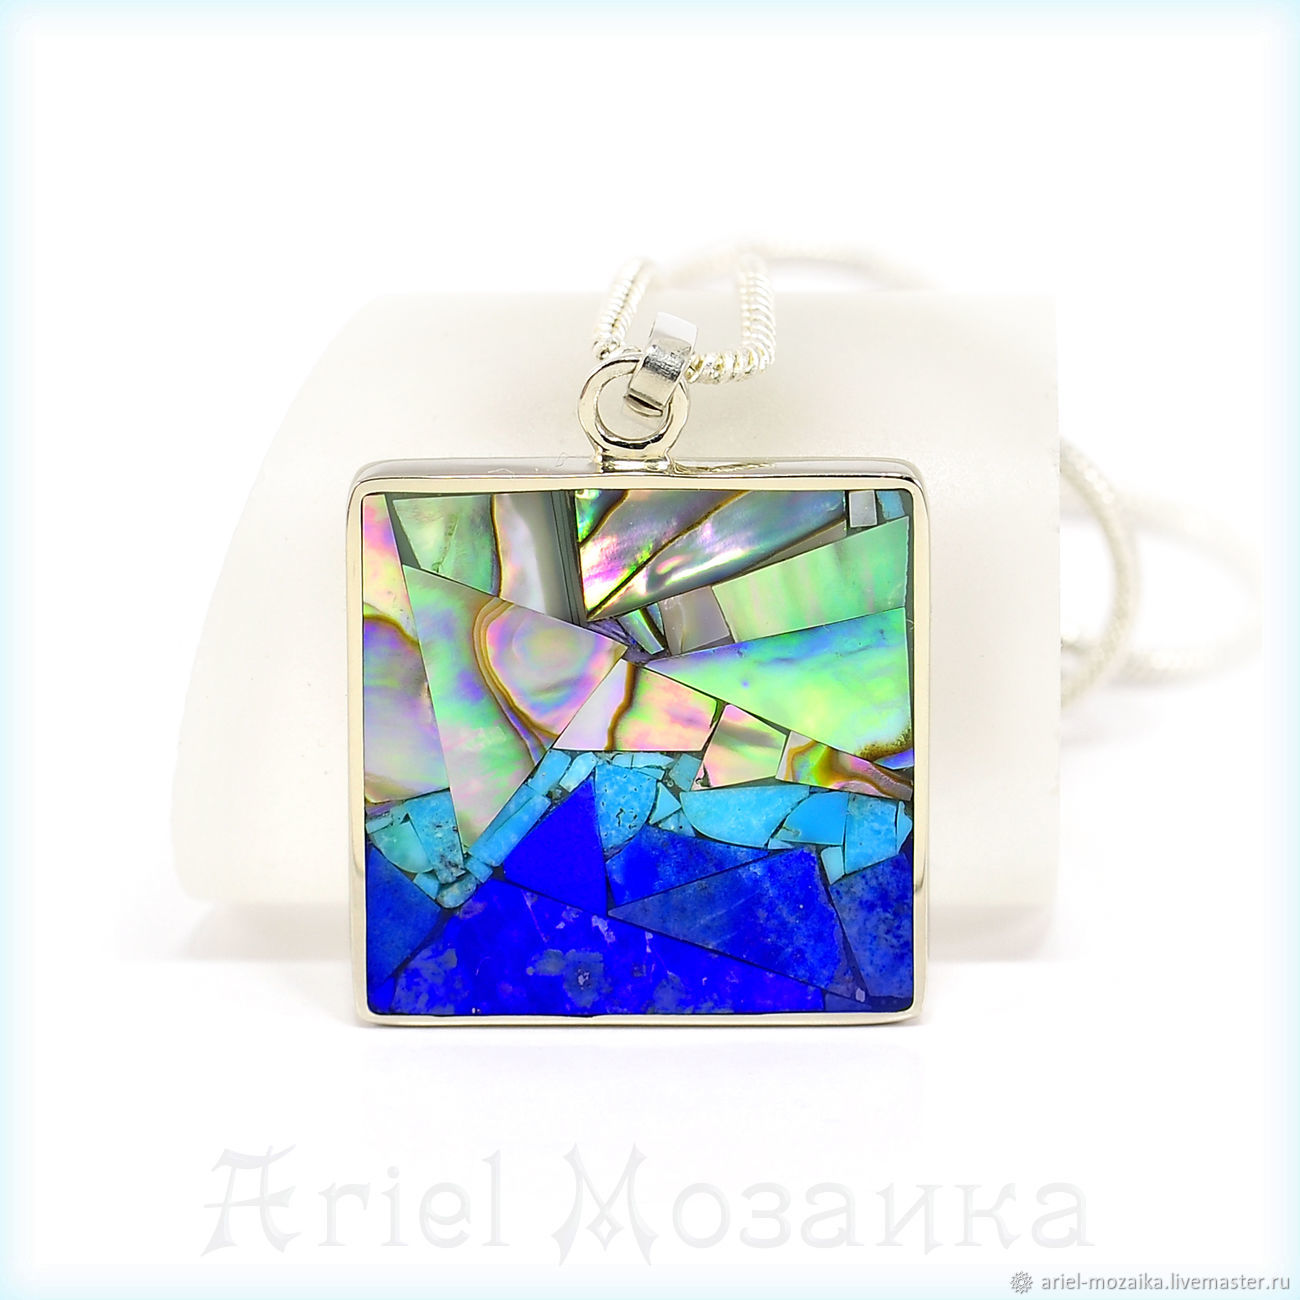 PENDANT `Mosaic landscape`. ARIEL - Alena - MOSAIC. Moscow. Pendant with lapis lazuli. Pendant with turquoise. Pendant with mother of pearl. Manual work of authorship.